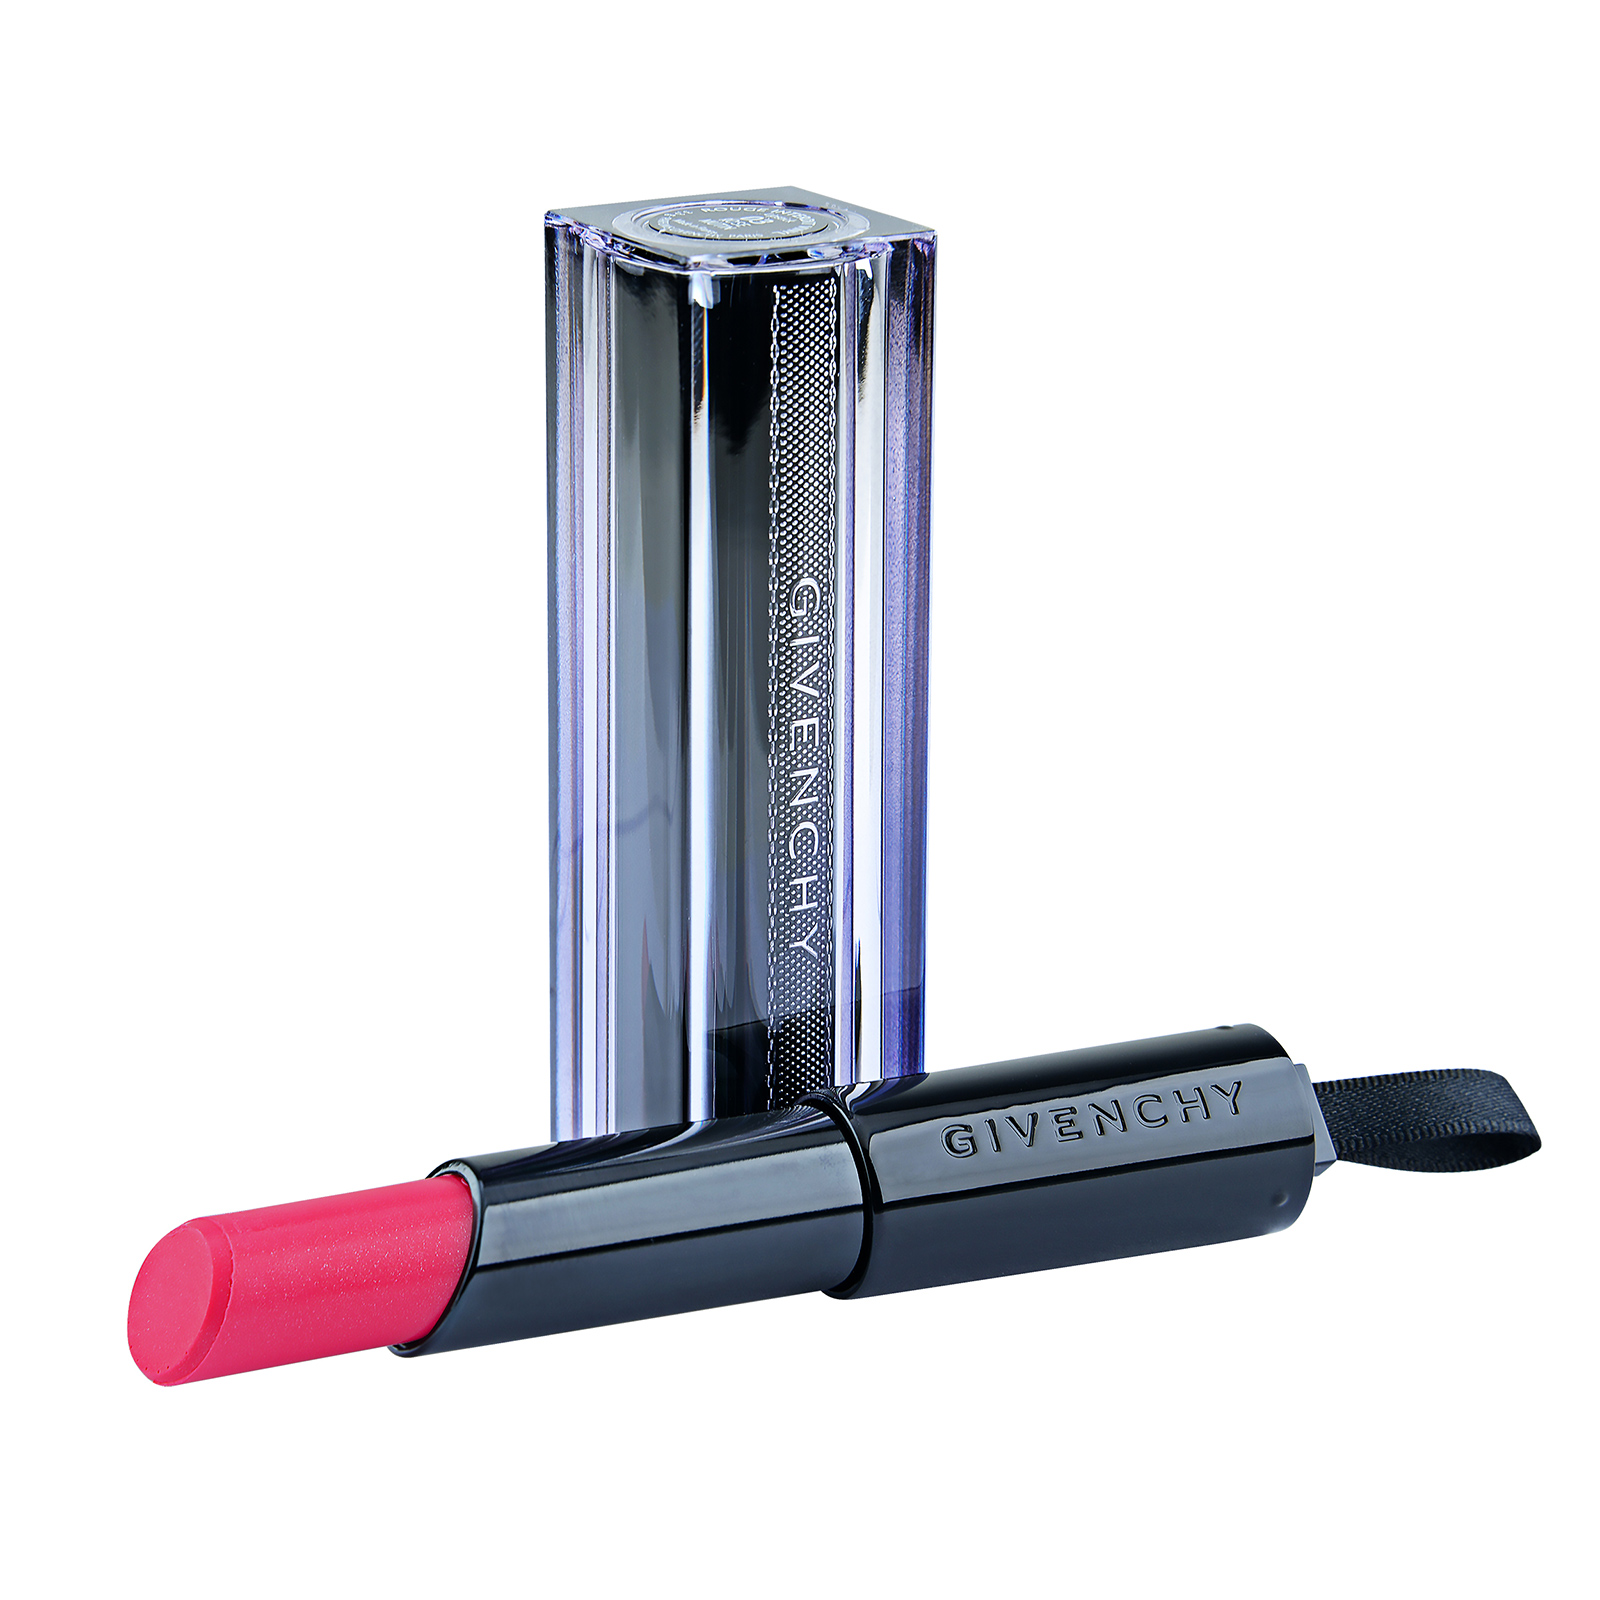 Givenchy  Rouge Interdit Vinyl Extreme Shine Lipstick Illicit Color 06 Rose Sulfureux, 0.11oz, 3.3g